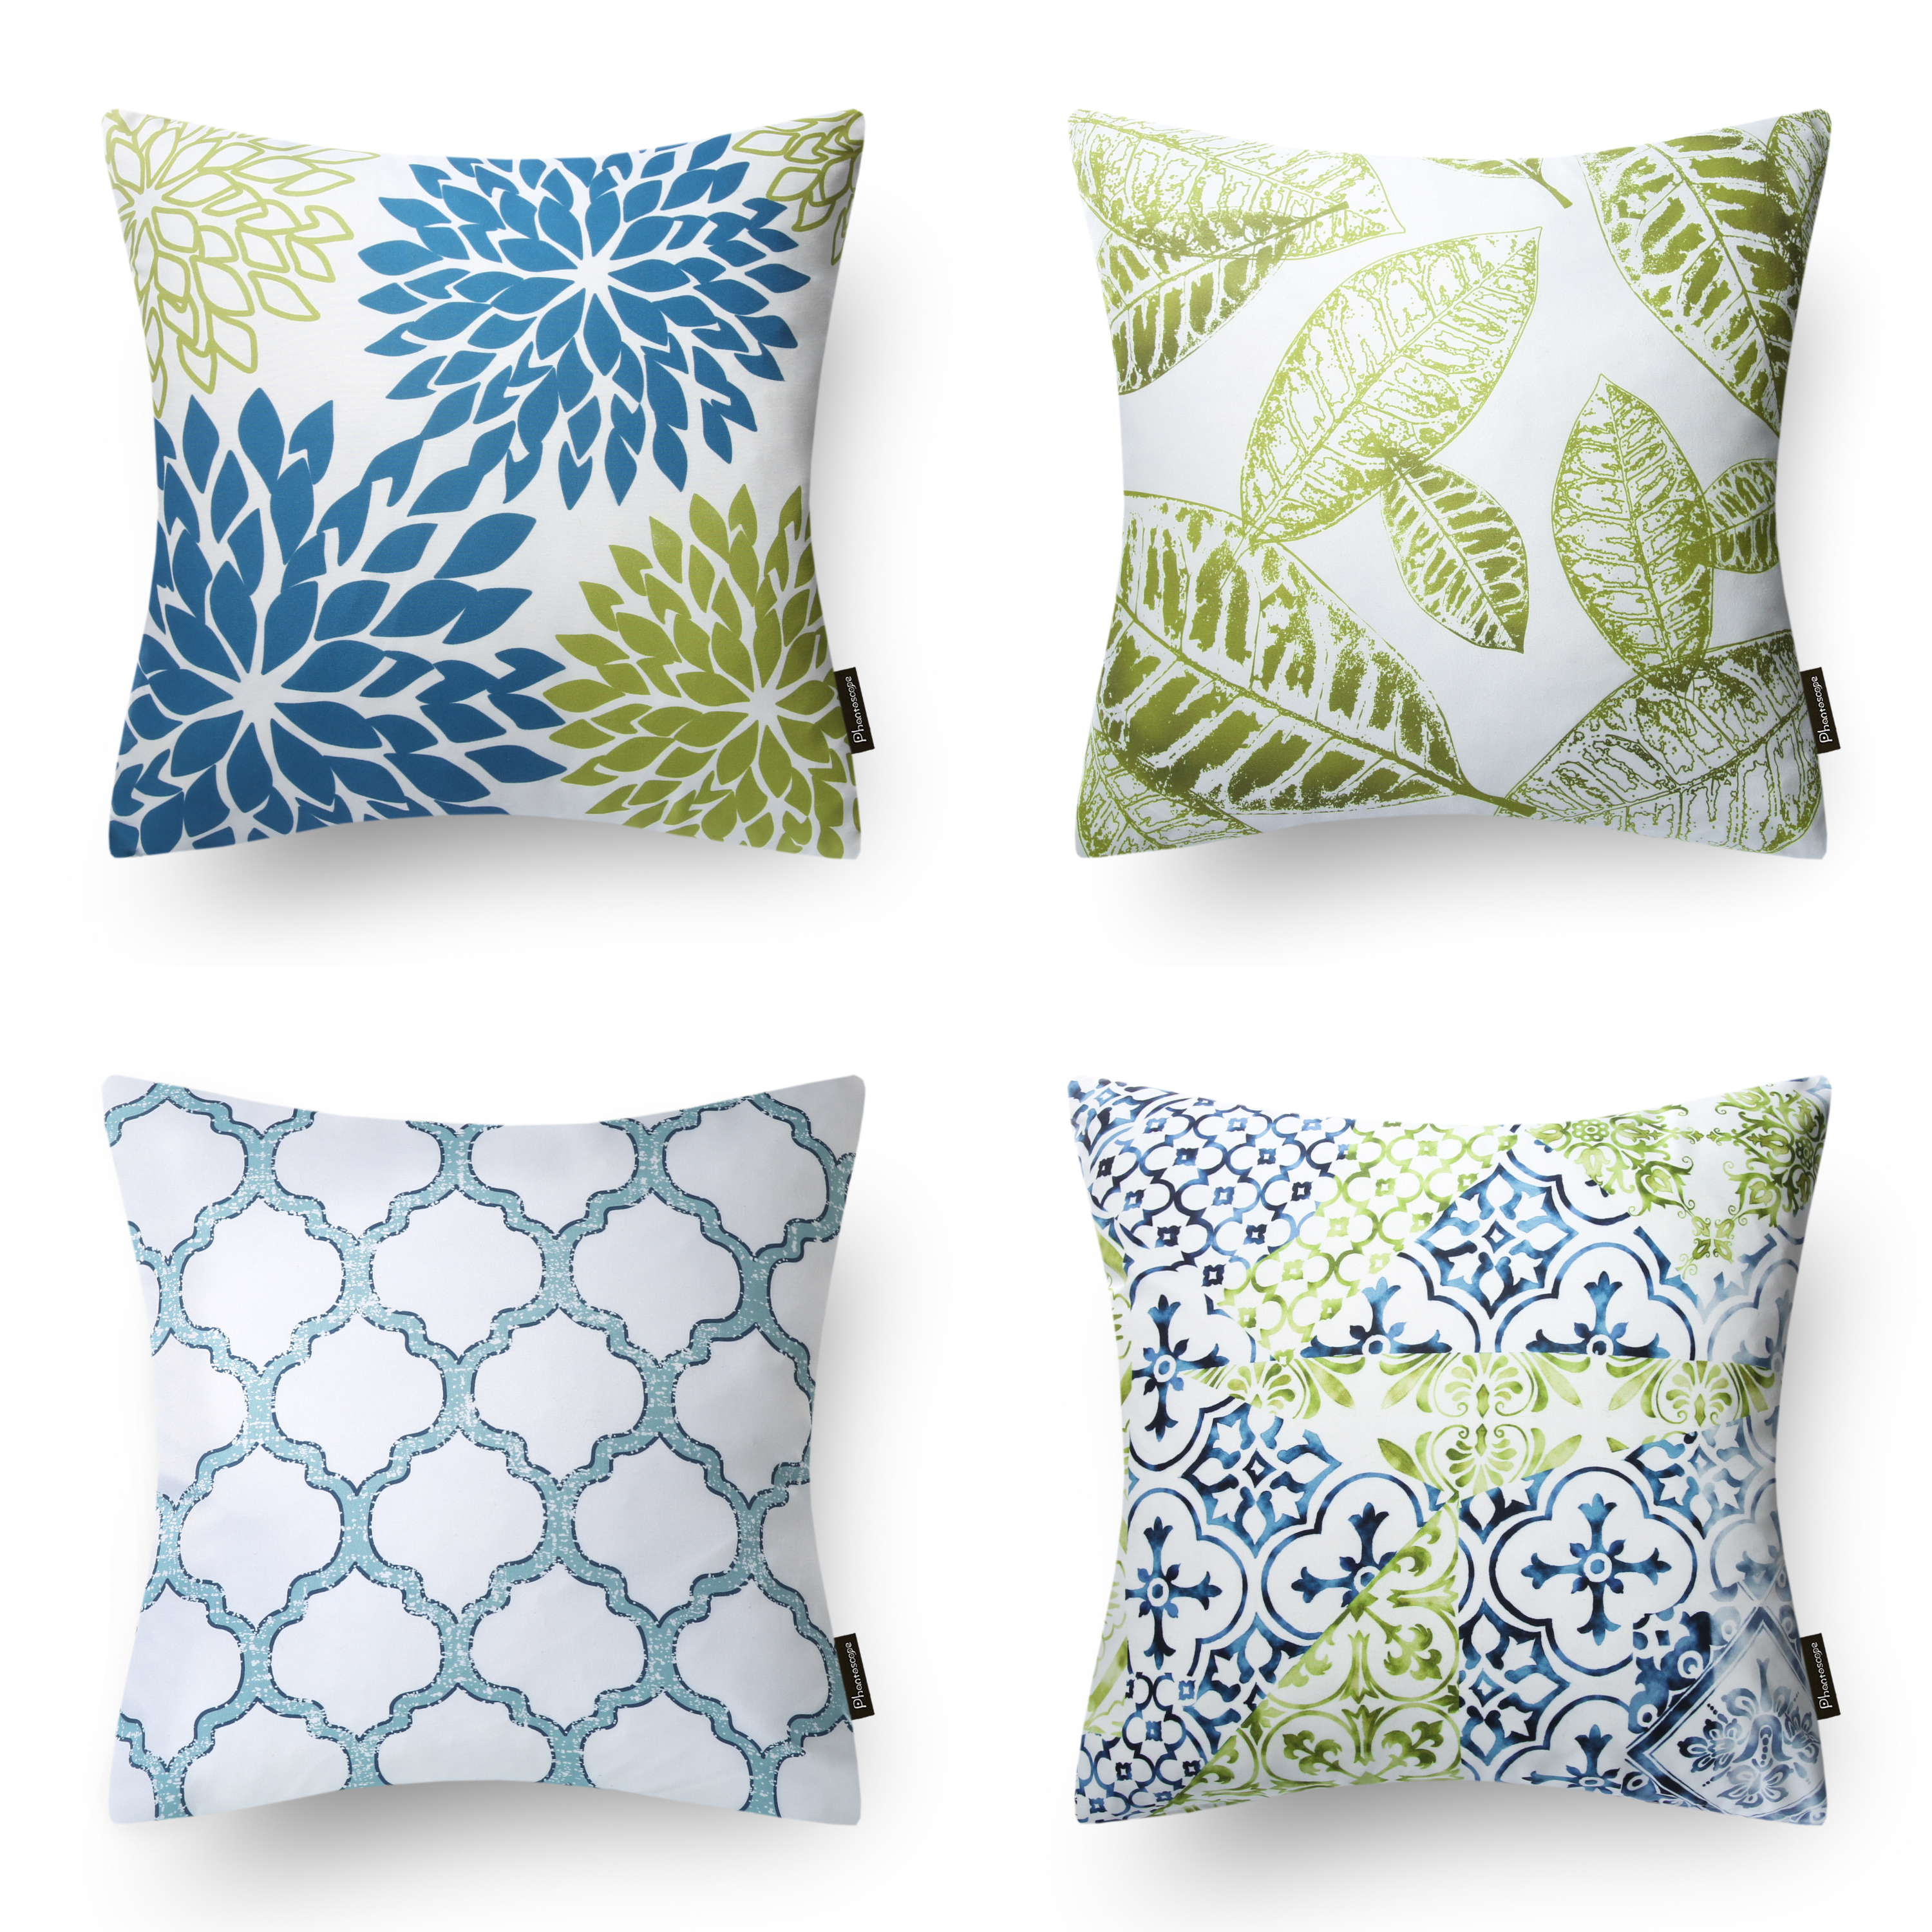 Phantoscope New Living Blue&Green Decorative Throw Pillow Case Cushion Cover Set of 4 (Pillow Covers Only)